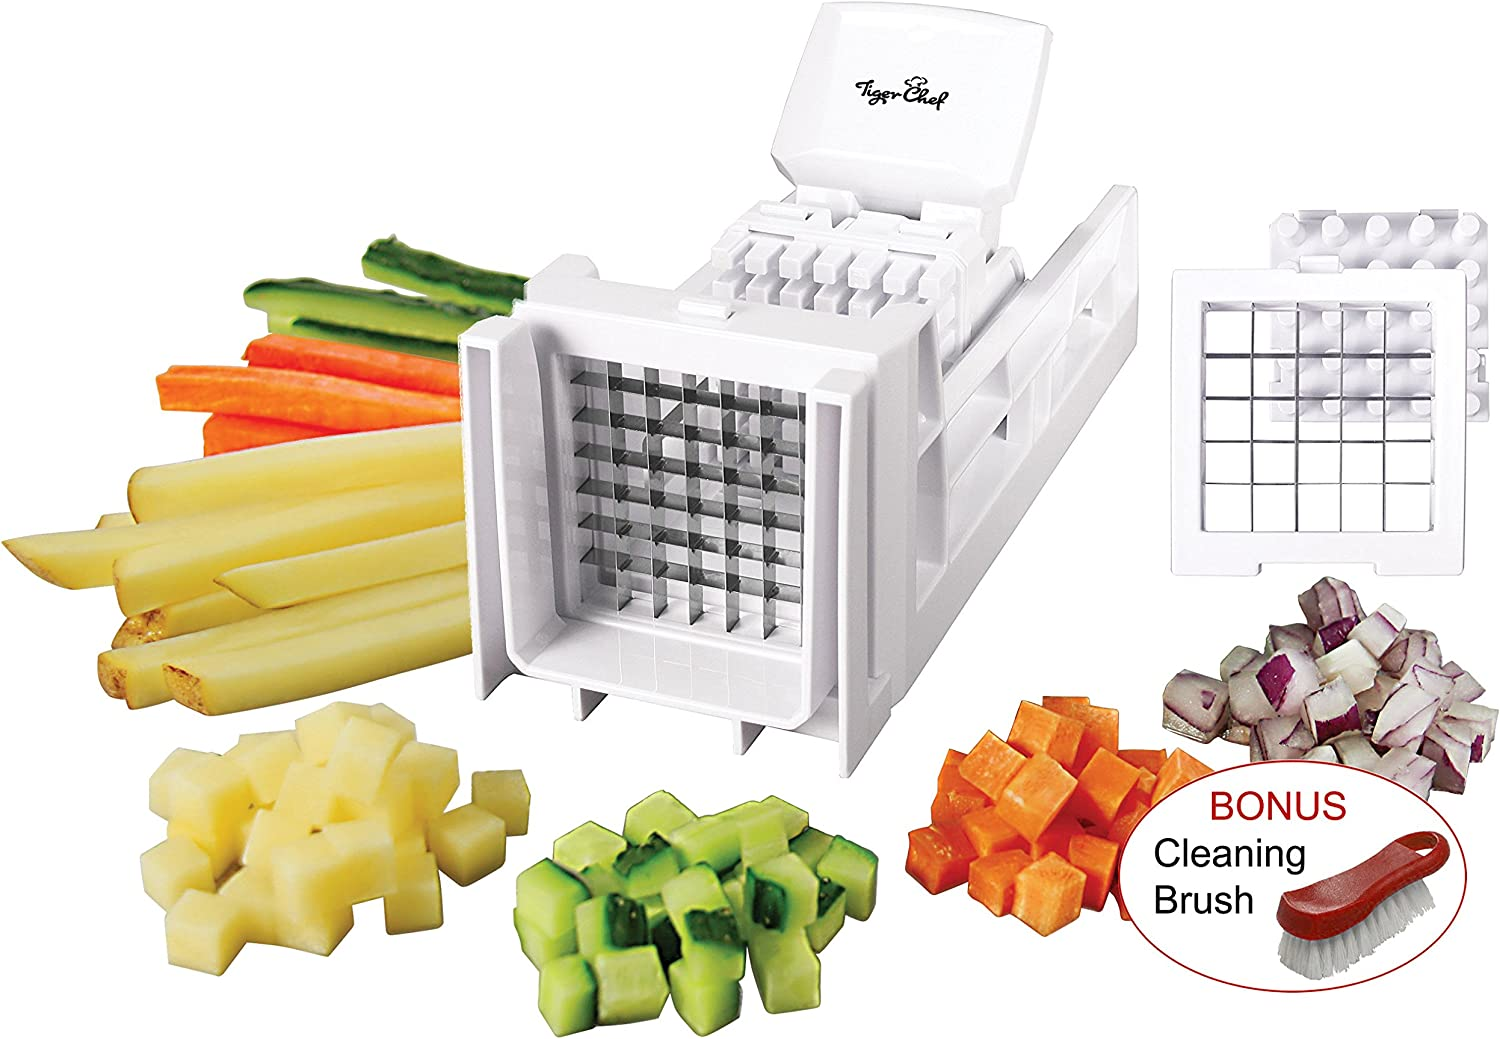 Tiger Chef French Fry Cutter and Easy Vegetable Dicer Chopper With 2 Interchangeable Blades